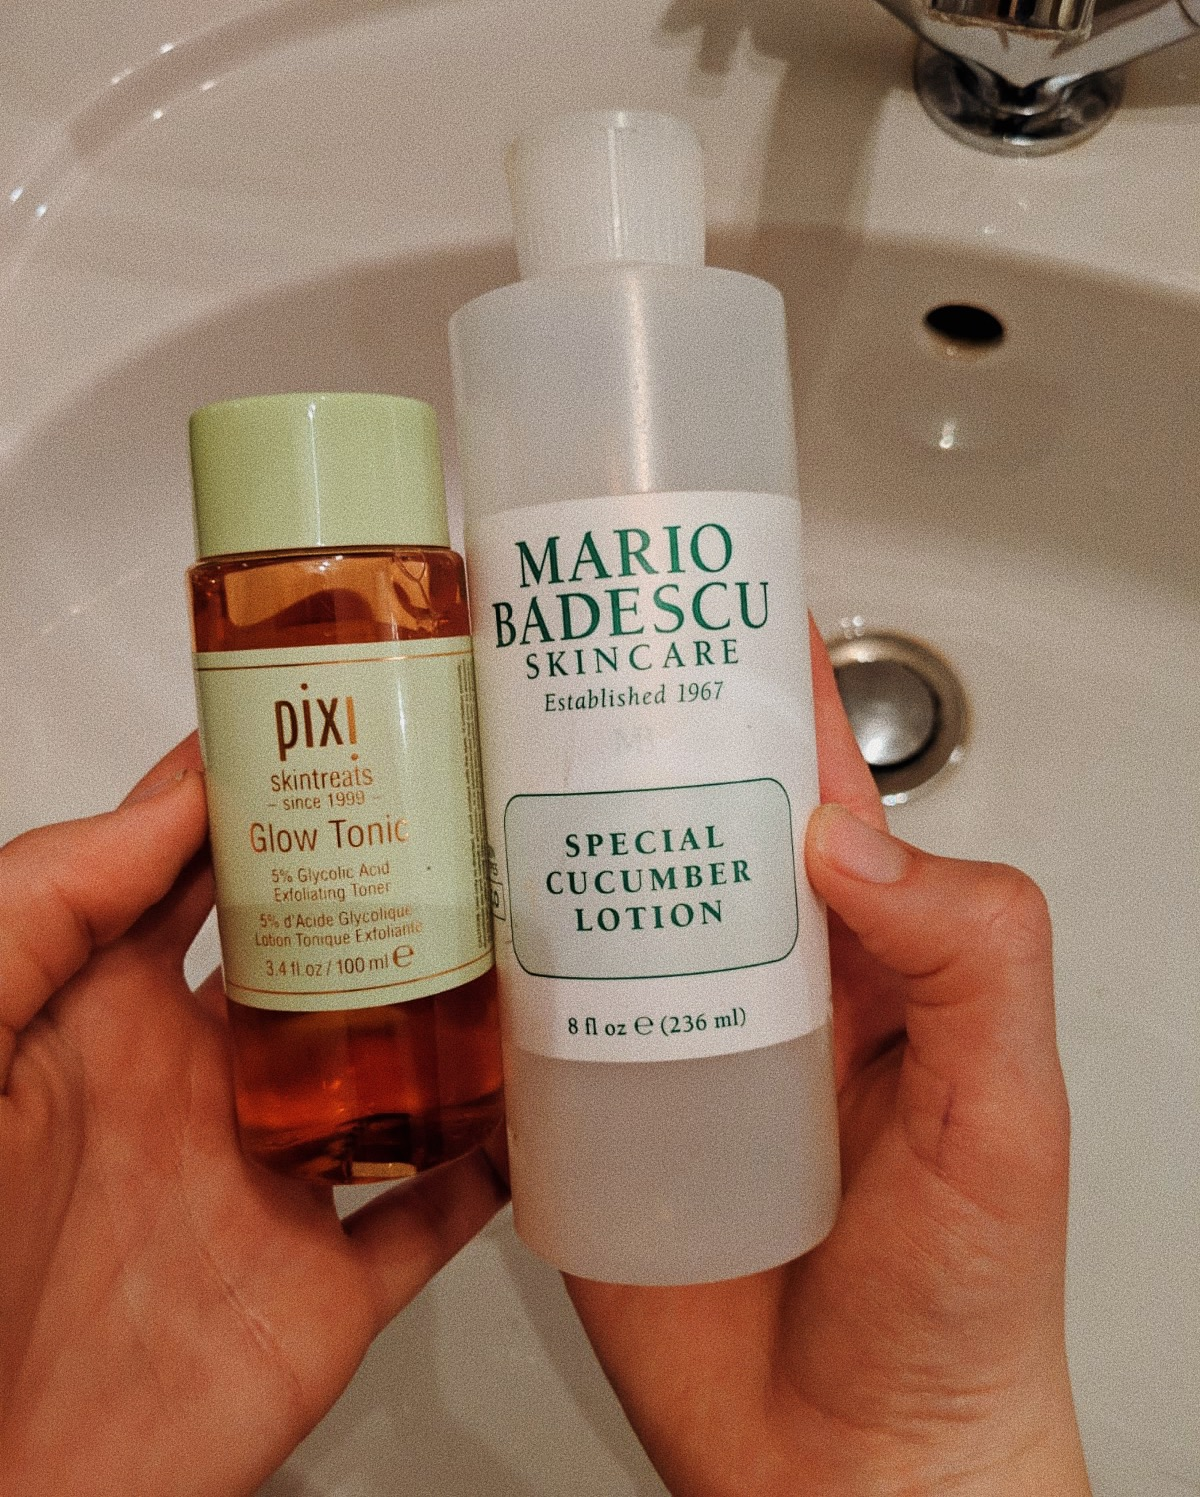 A Relaxing Evening Routine   Skincare and Ways To Wind Down4.JPG